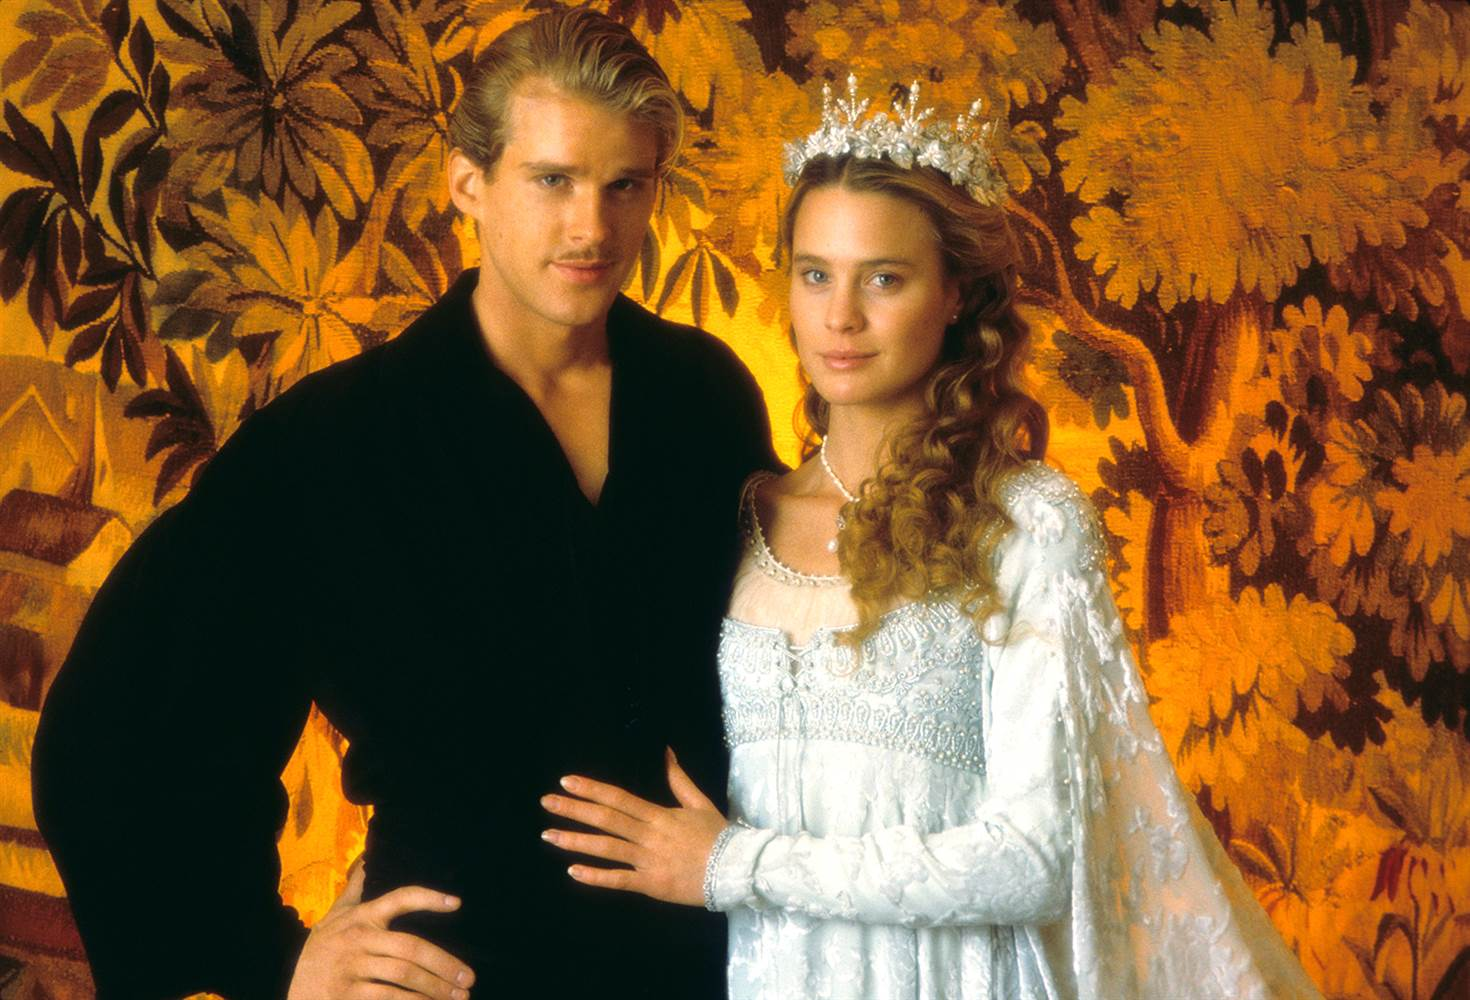 Westley And Buttercup The Princess Bride